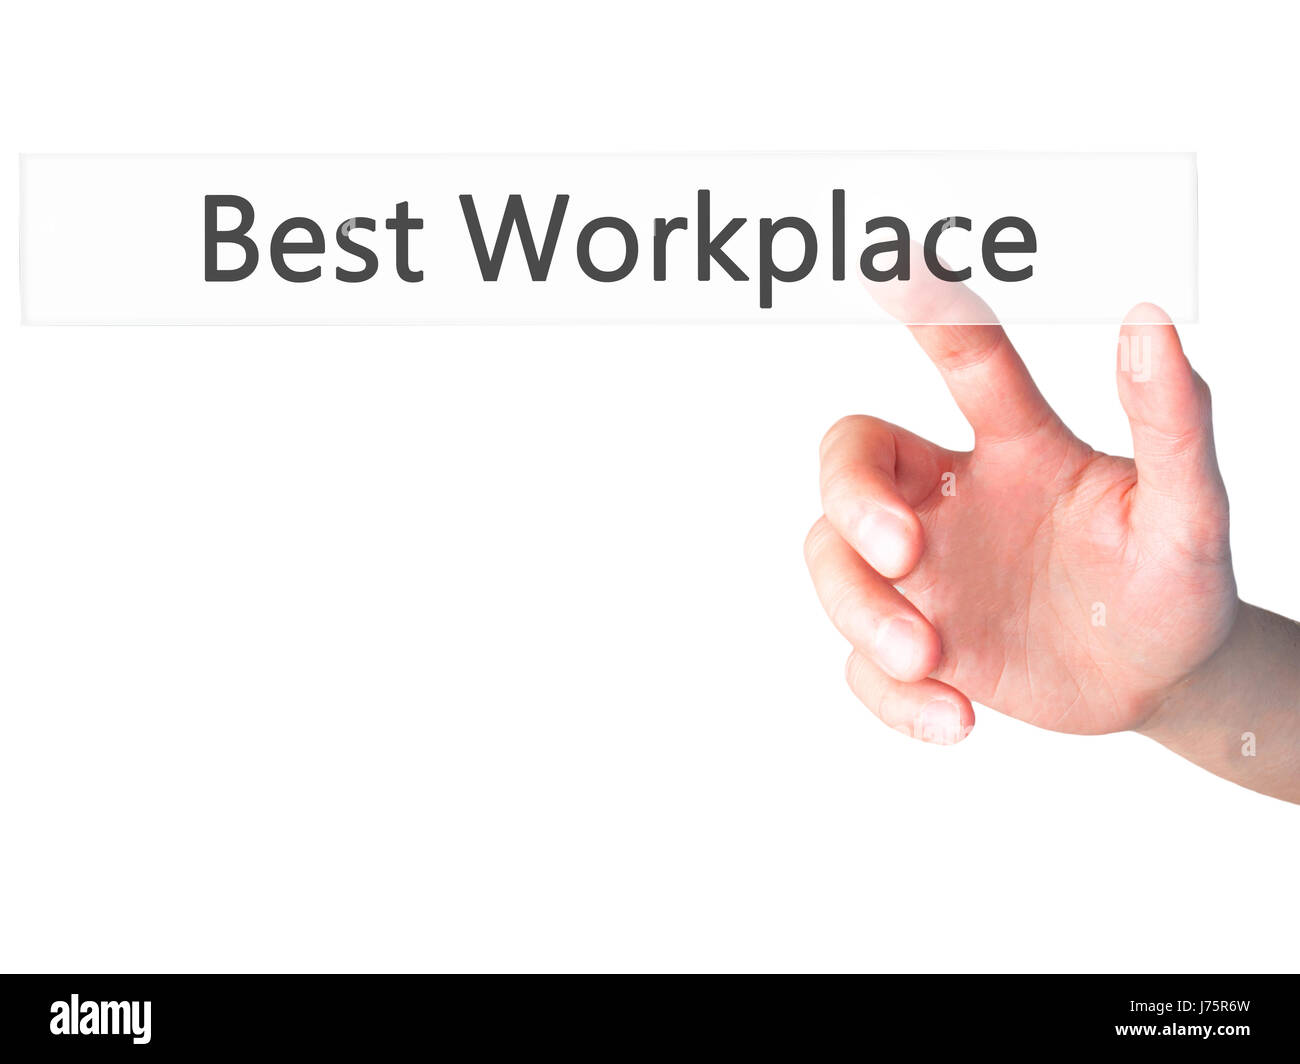 Best Workplace - Hand pressing a button on blurred background concept . Business, technology, internet concept. - Stock Image